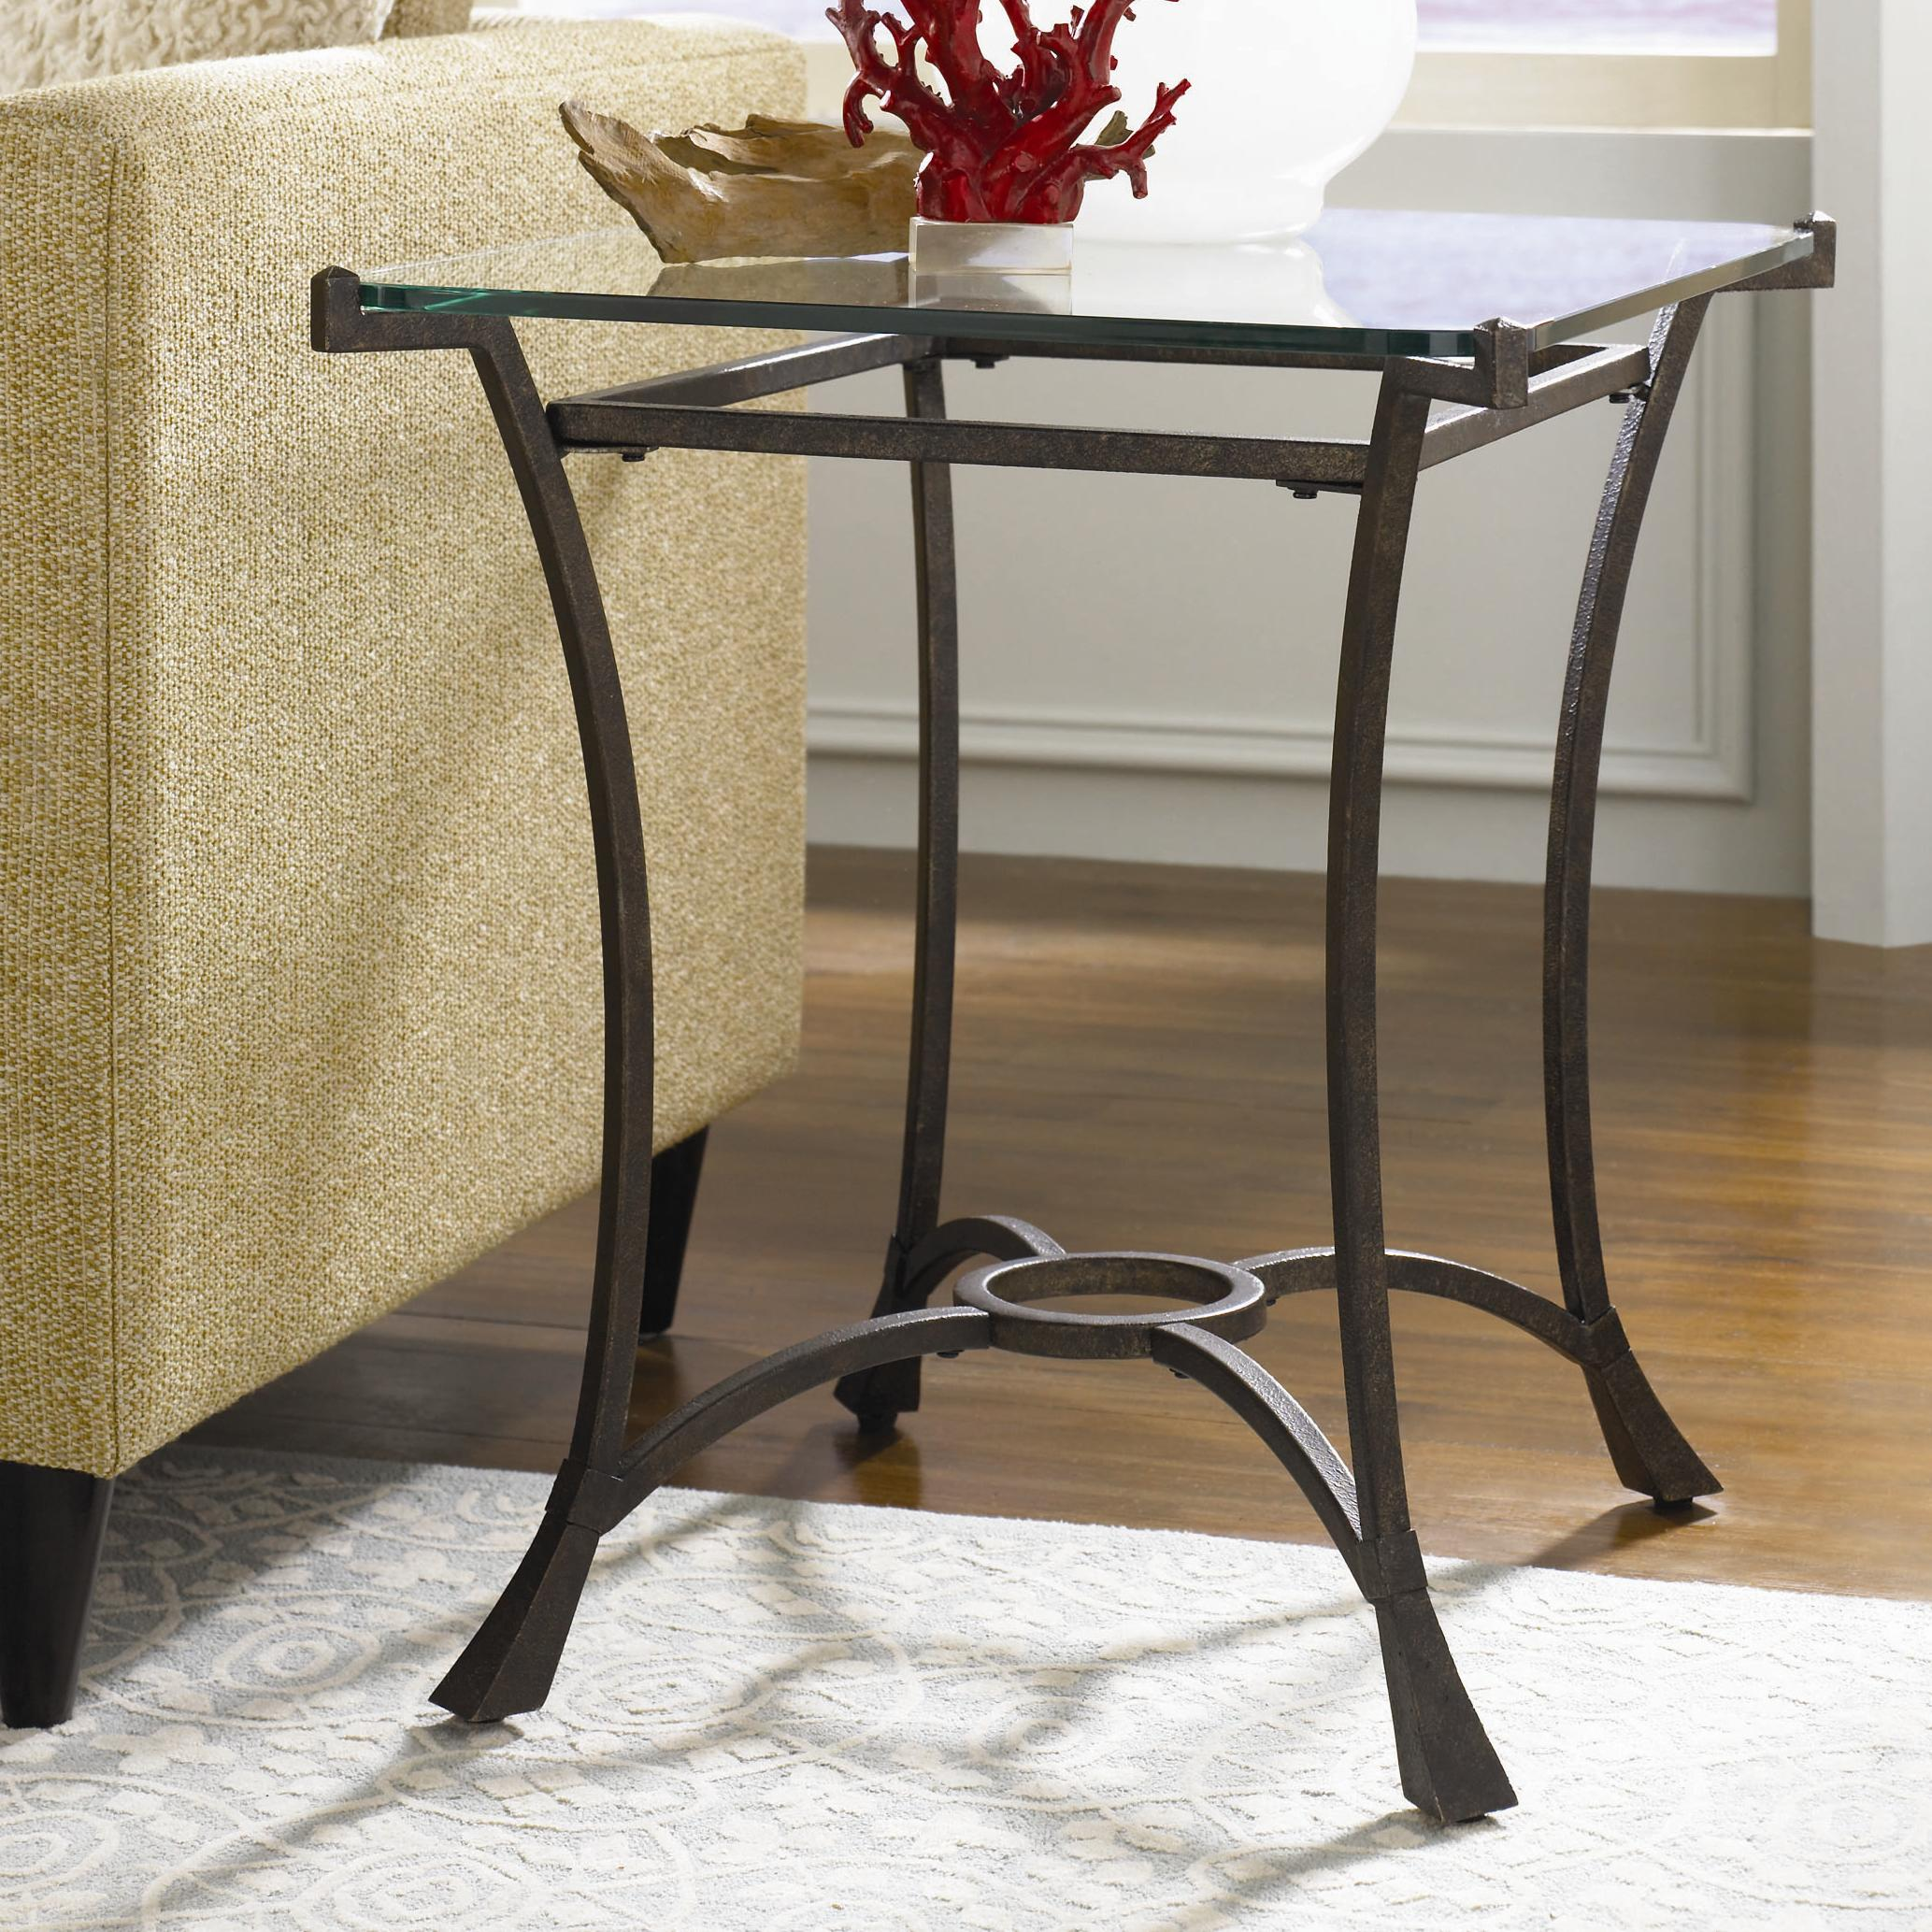 Contemporary metal rectangular end table with glass top by hammary wolf and gardiner wolf furniture